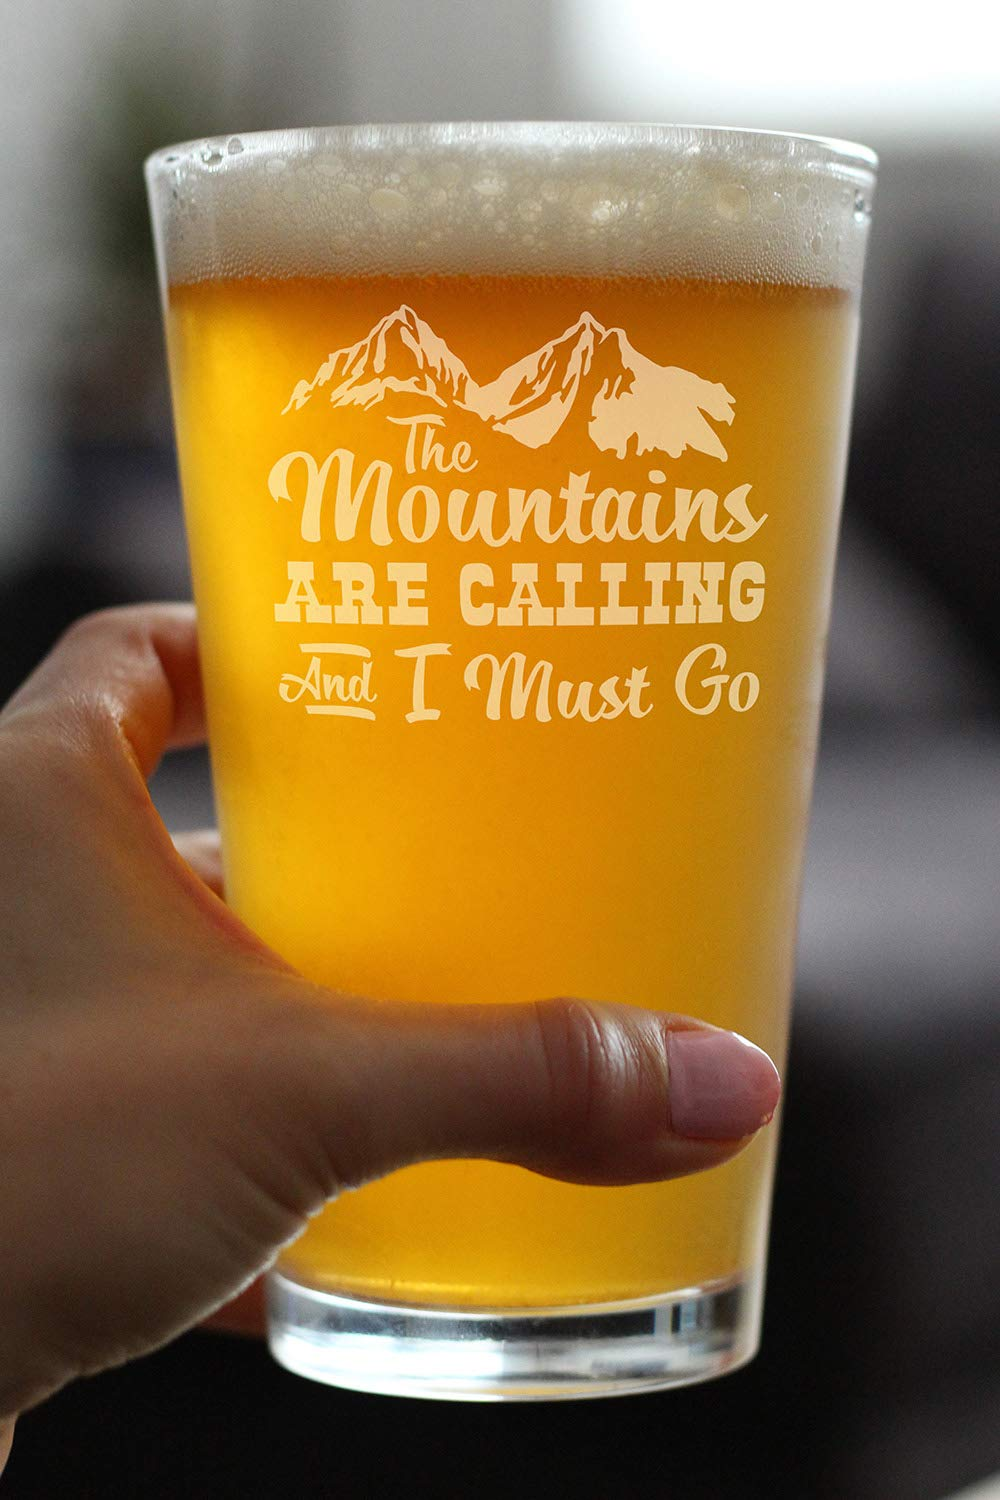 Fun Drinking Decor 16 oz Pint Glass for Beer Mountains are Calling Gifts for Men /& Women that Love Hiking /& Cabins